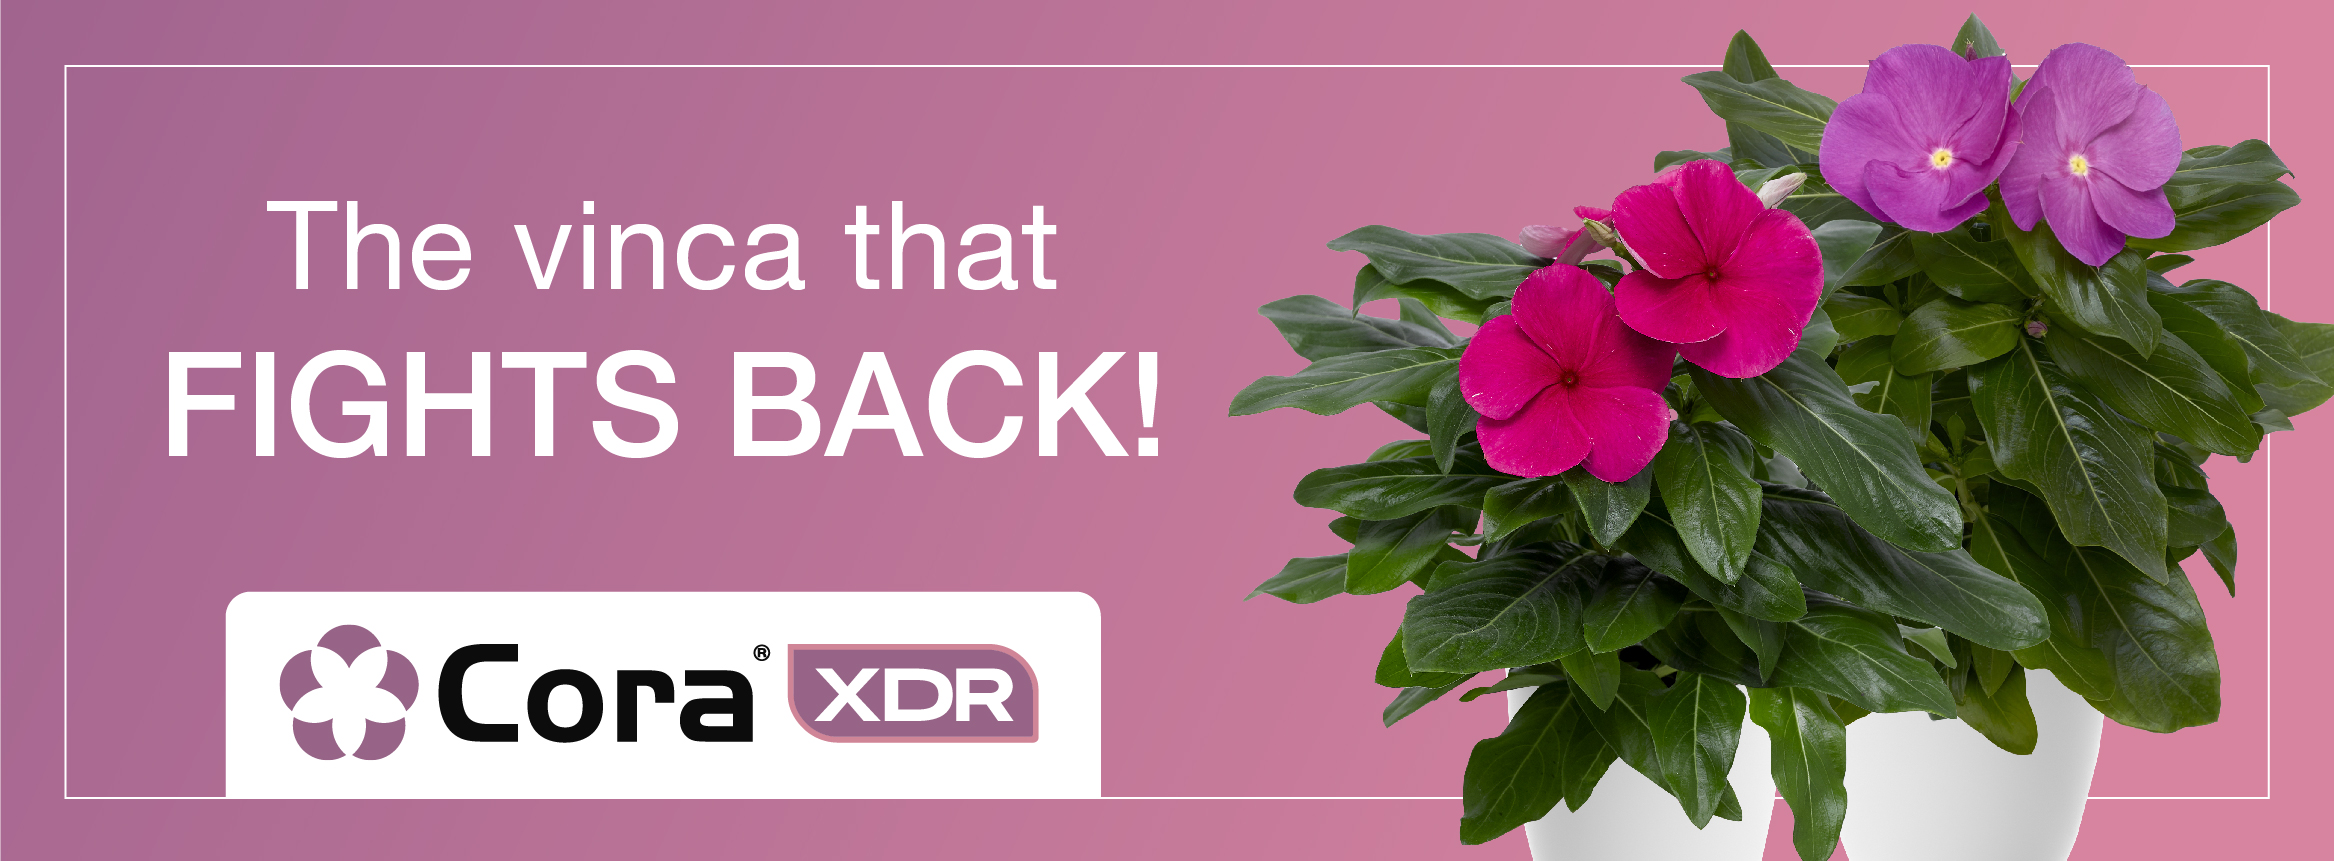 The Vinca that fights back - Cora XDR